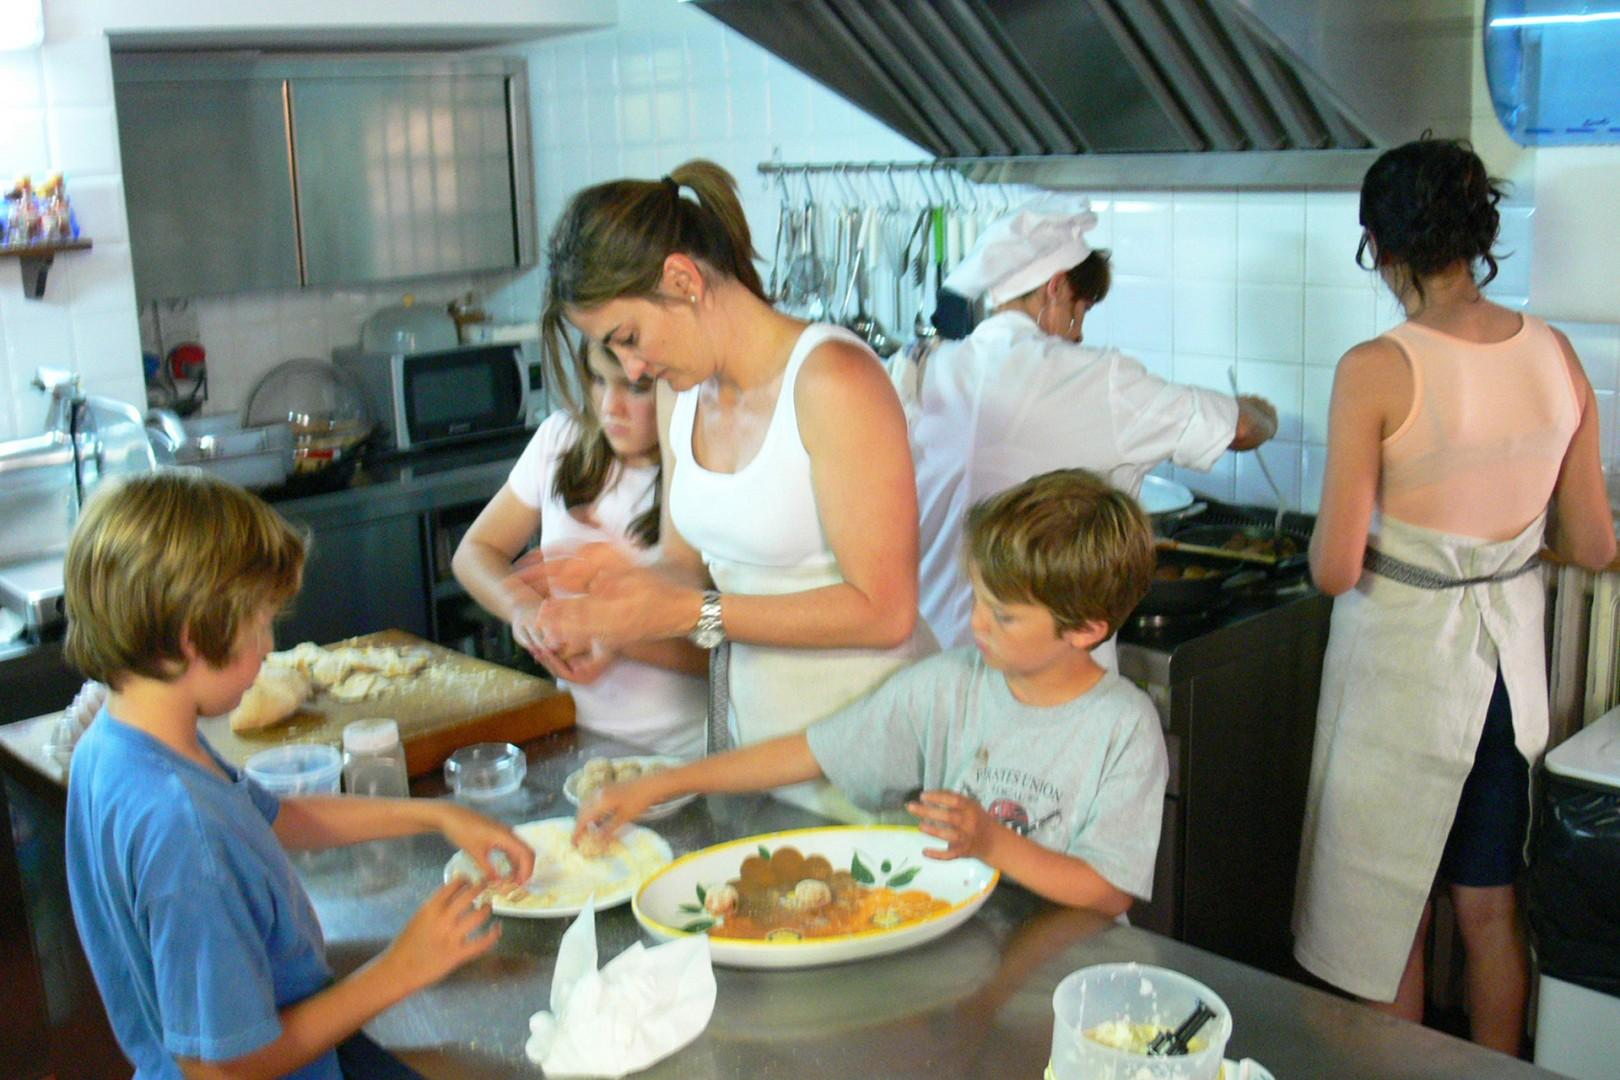 Cooking lessons are offered with advance arrangement.